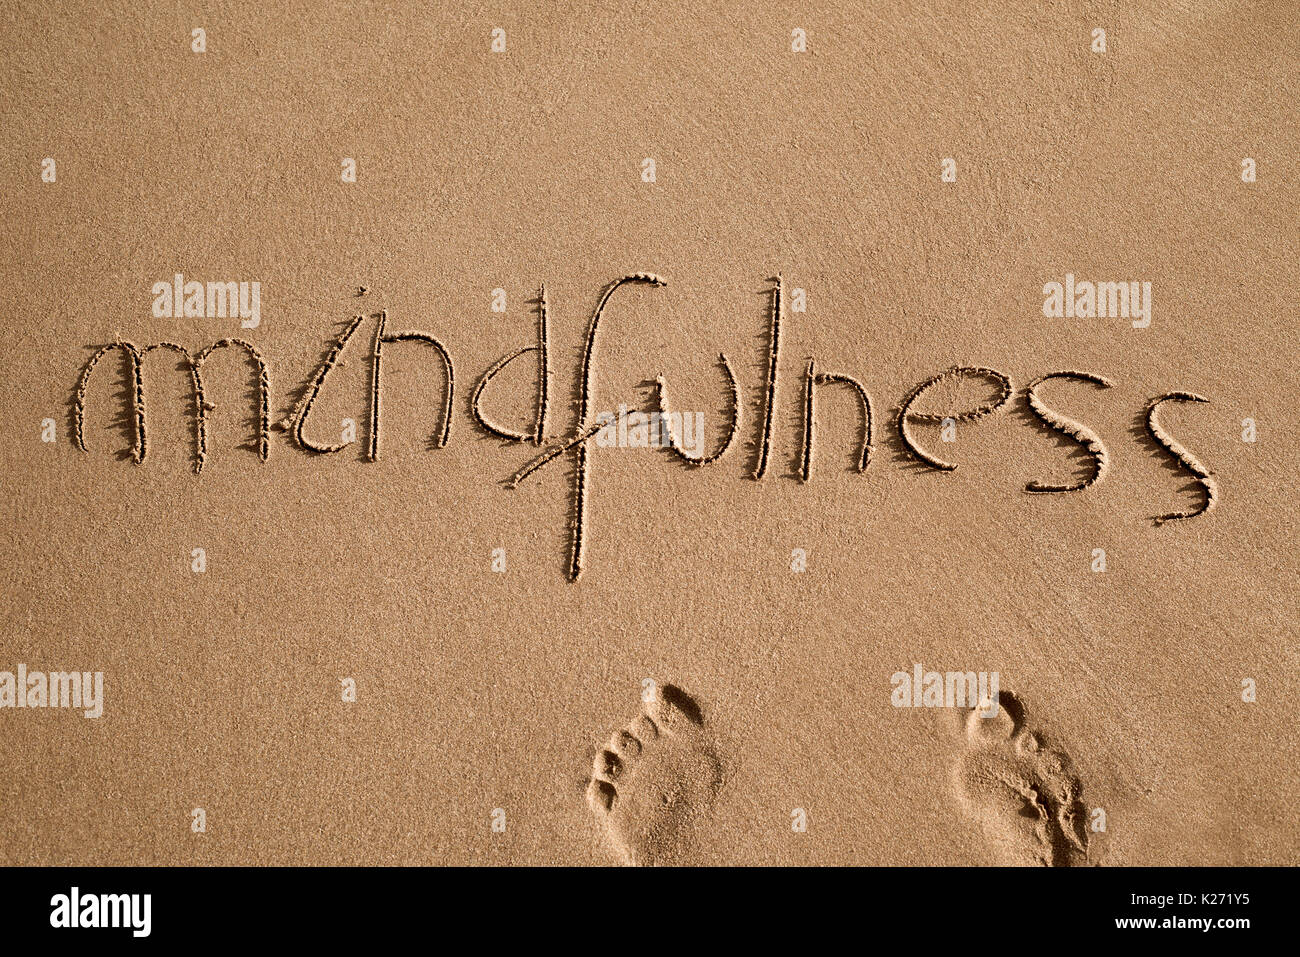 high-angle shot of the word mindfulness written in the sand of a beach and a pair of human footprints - Stock Image